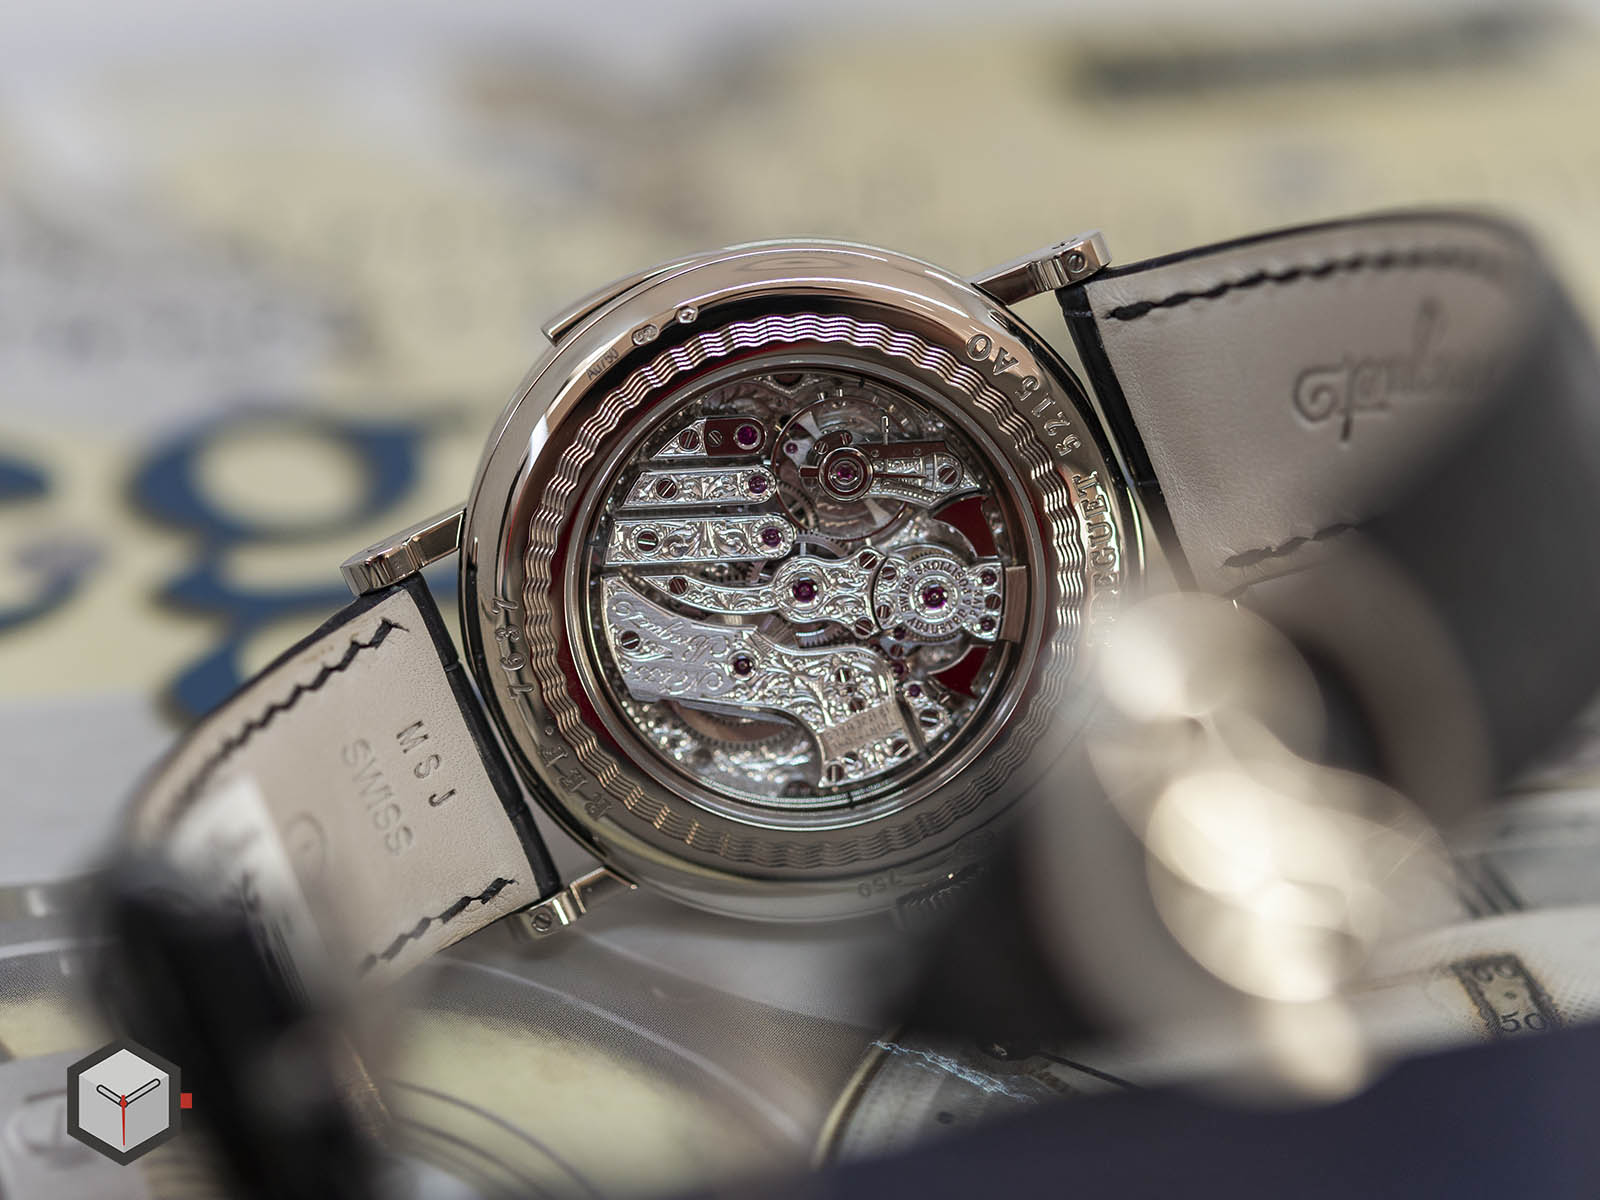 7637bb-12-9zu-breguet-repetition-minutes-7637-8.jpg